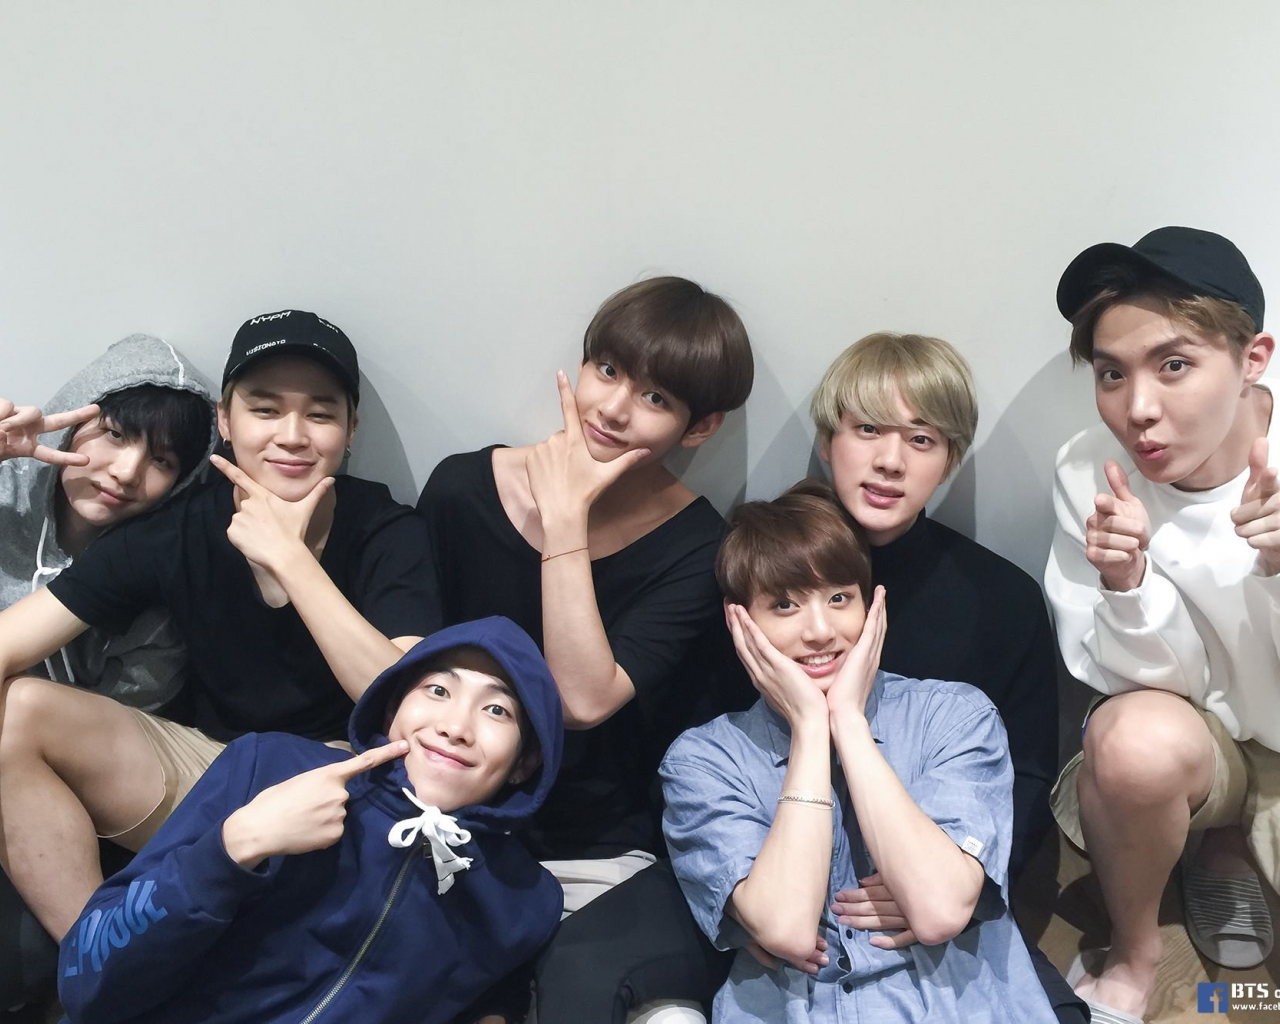 Free Download Bts Wallpaper 2018 75 Images 2000x1333 For